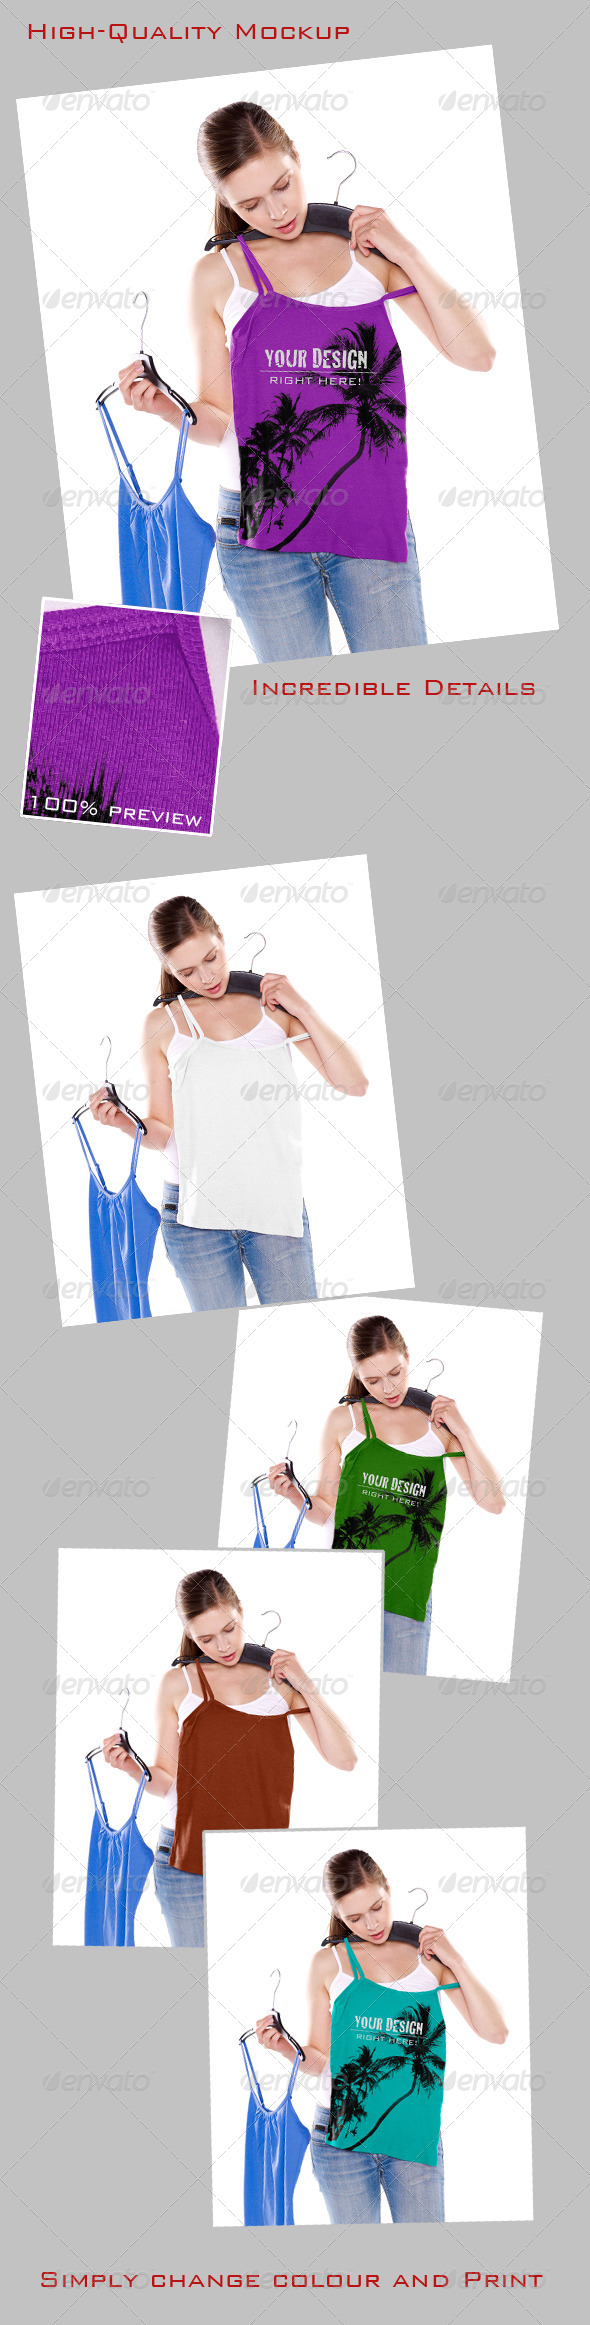 GraphicRiver Mock-Up Girl Trying on Top 4754799